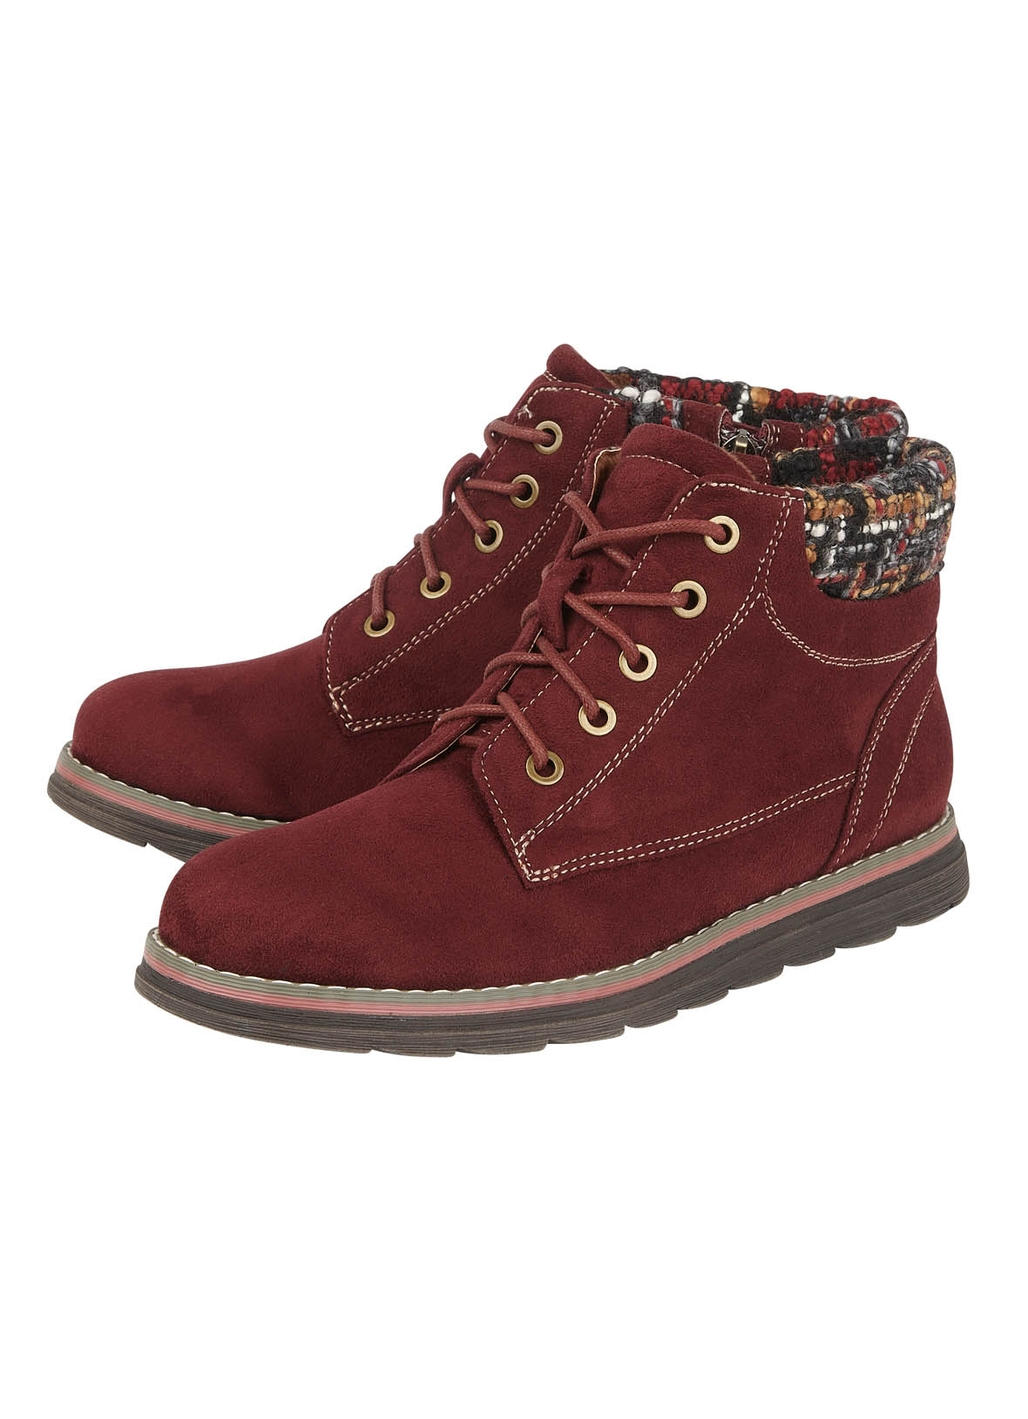 Lotus Sycamore Ankle Boots in Bordeaux